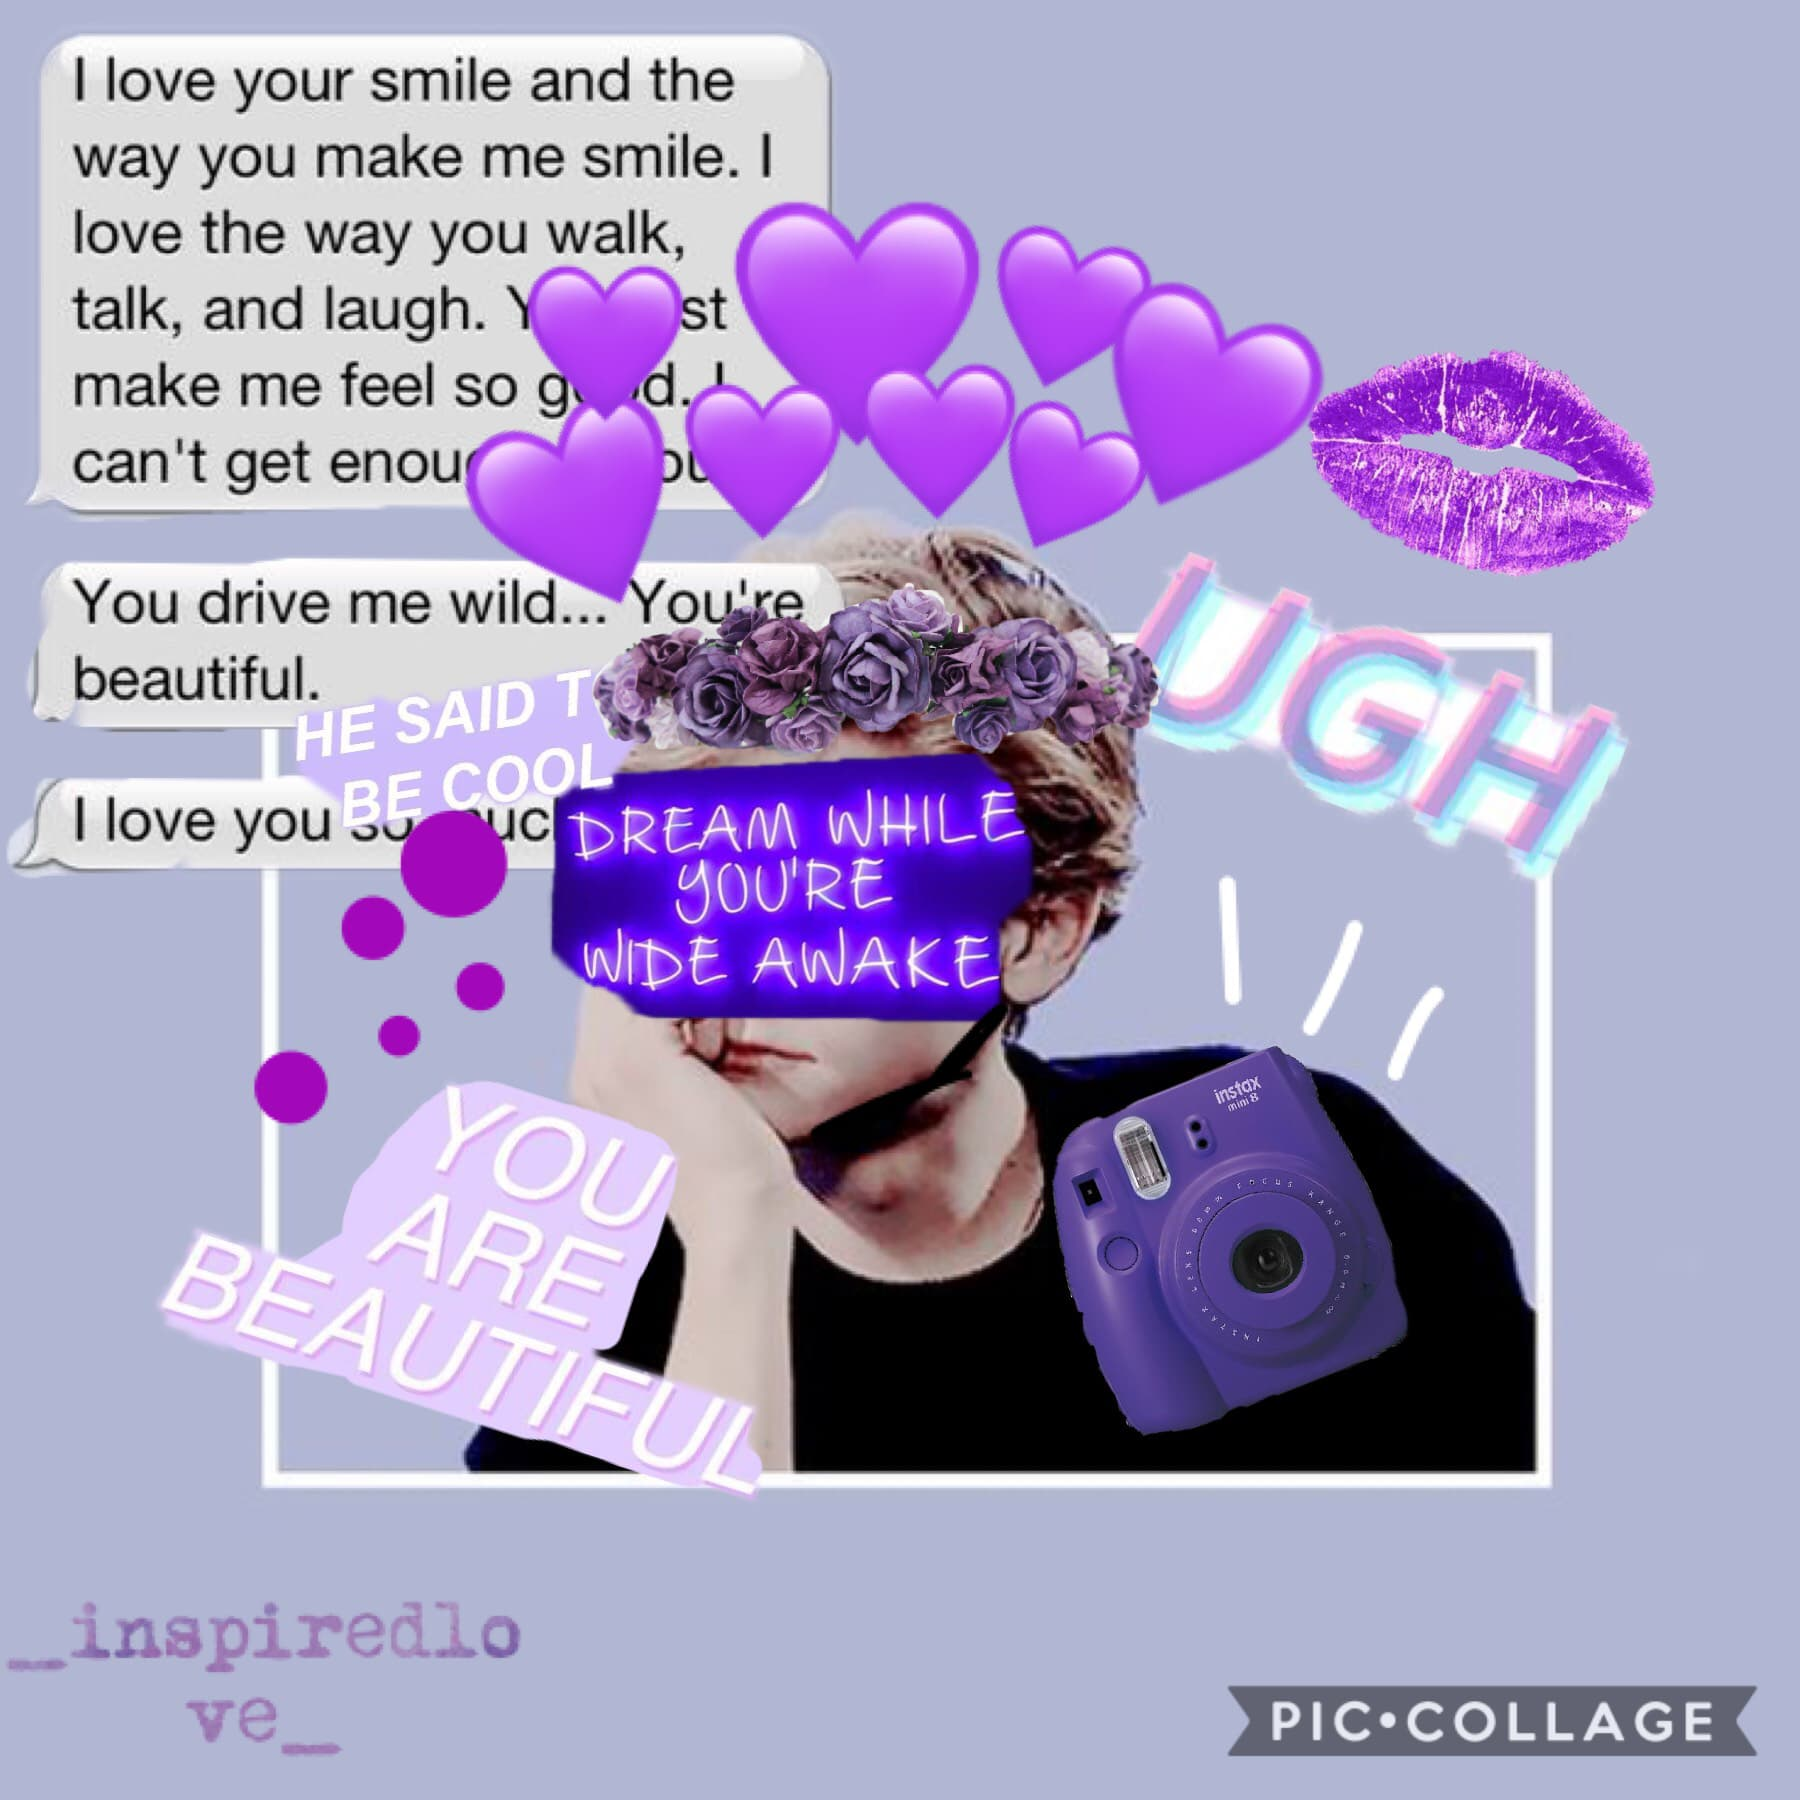 this is probably really bad but oh well. the picture i used is a picture of one of my favorite actors, Thomas Brodie-Sangster. he's sooo cute and amazing and ughh. but anyways, have a good day/night💖